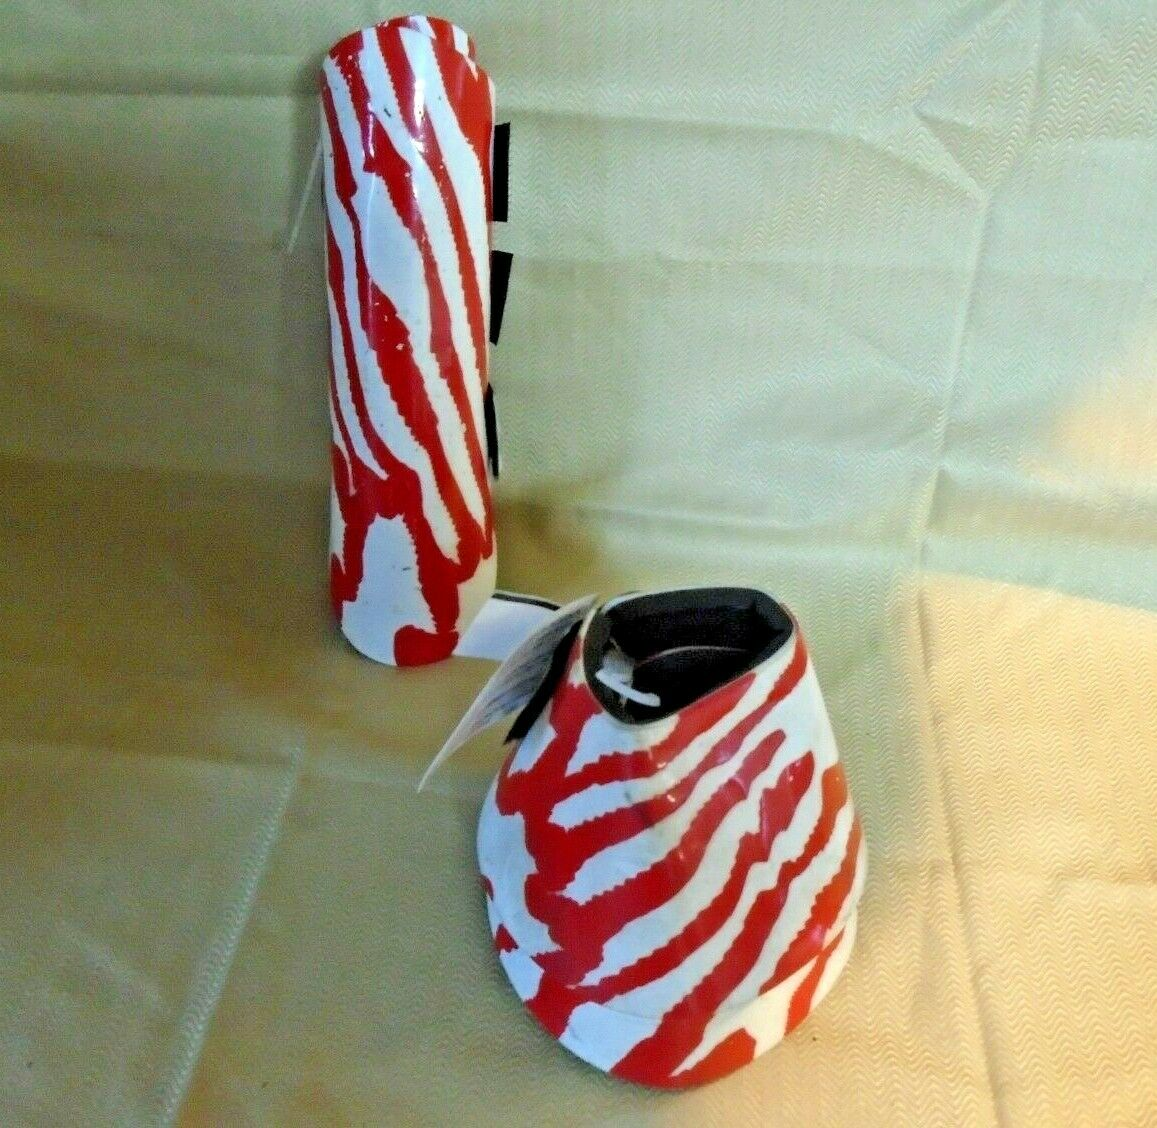 Davis Medium Horse Splints and Bell Boots PAIR OF EACH (4) pieces Red + White